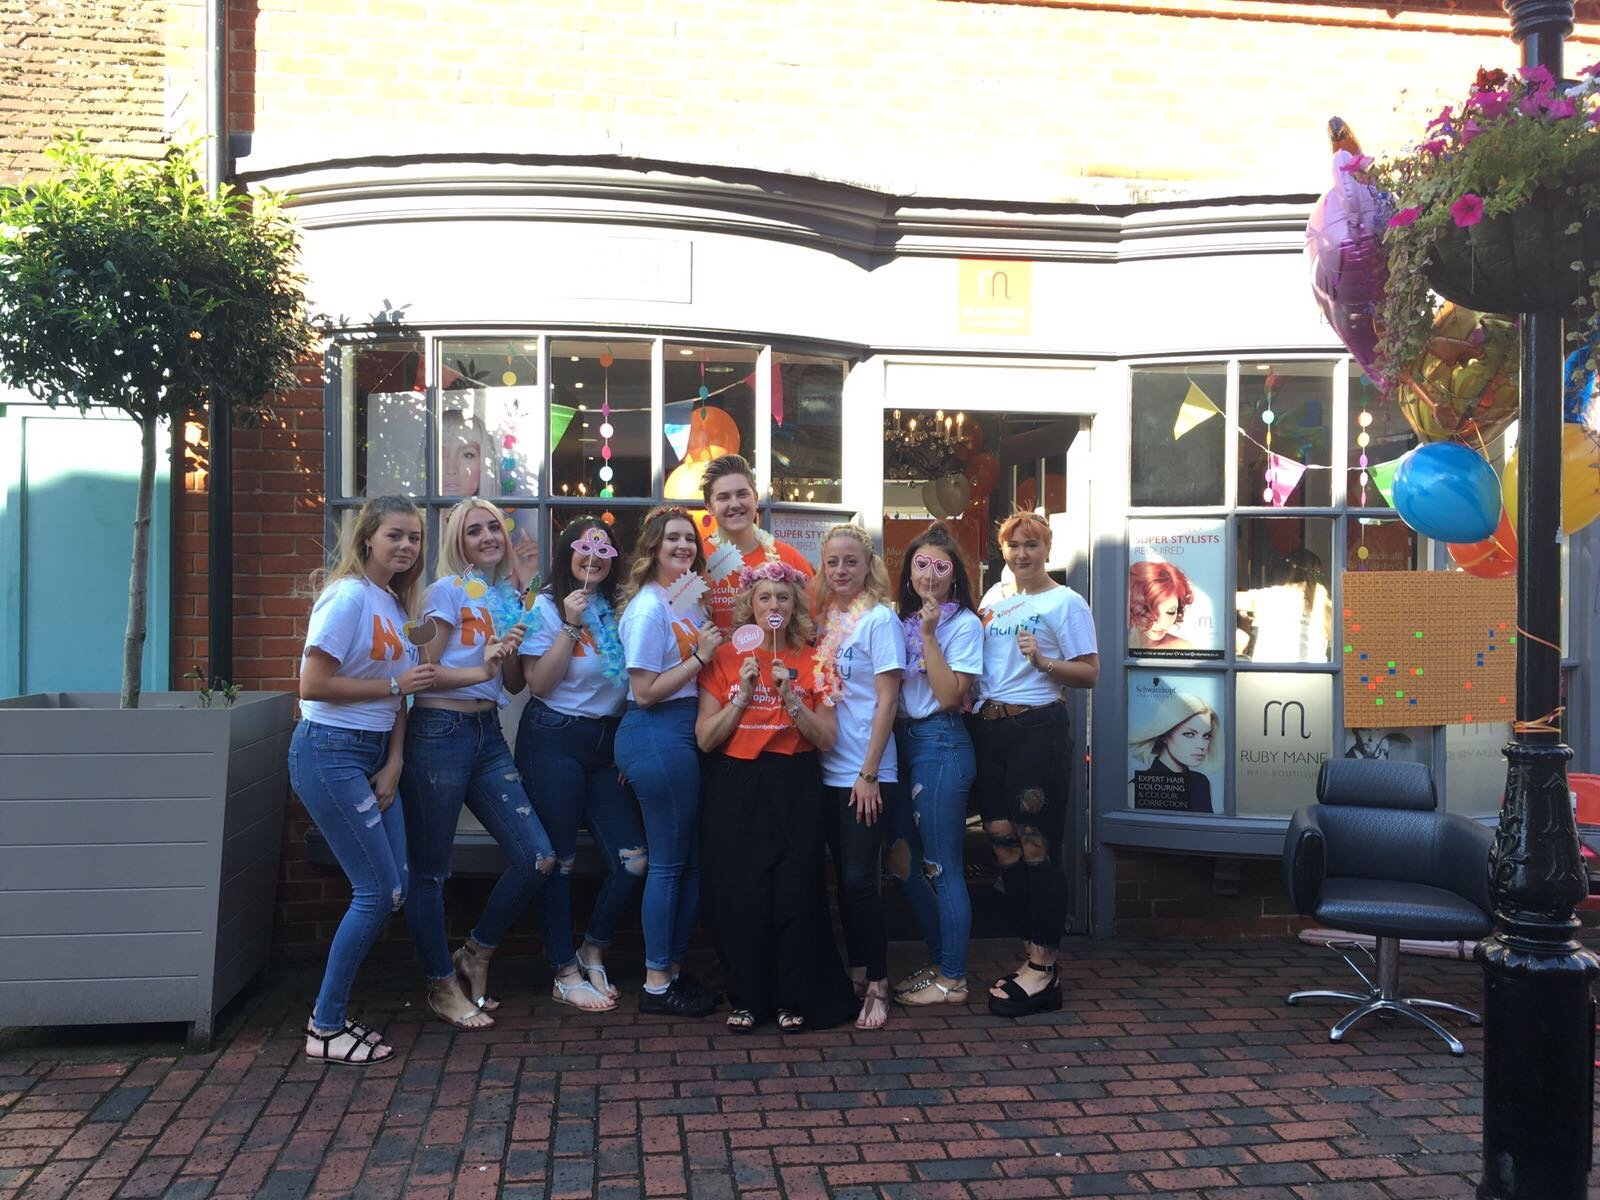 Ruby Mane Hair Salon team in Farnham